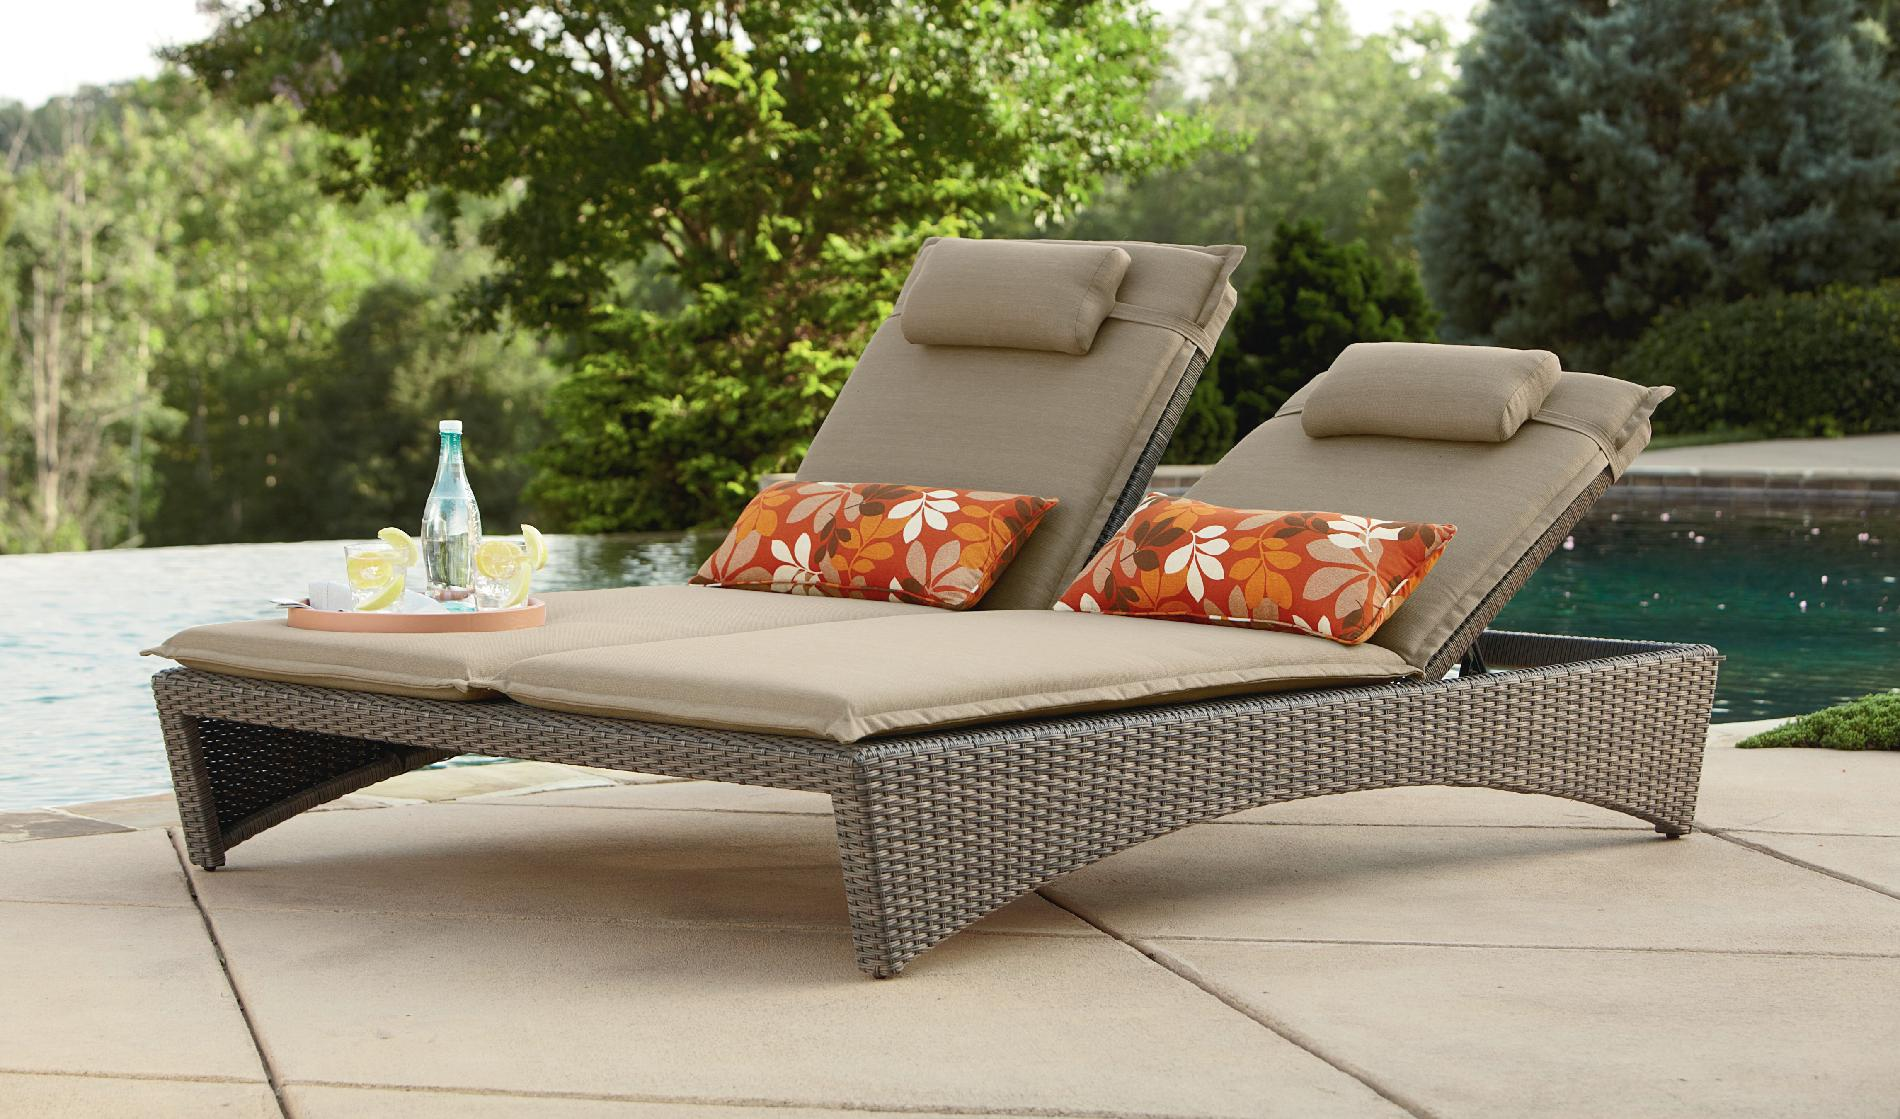 Pool Deck Chairs Patio Chaise Lounge As The Must Have Furniture In Your